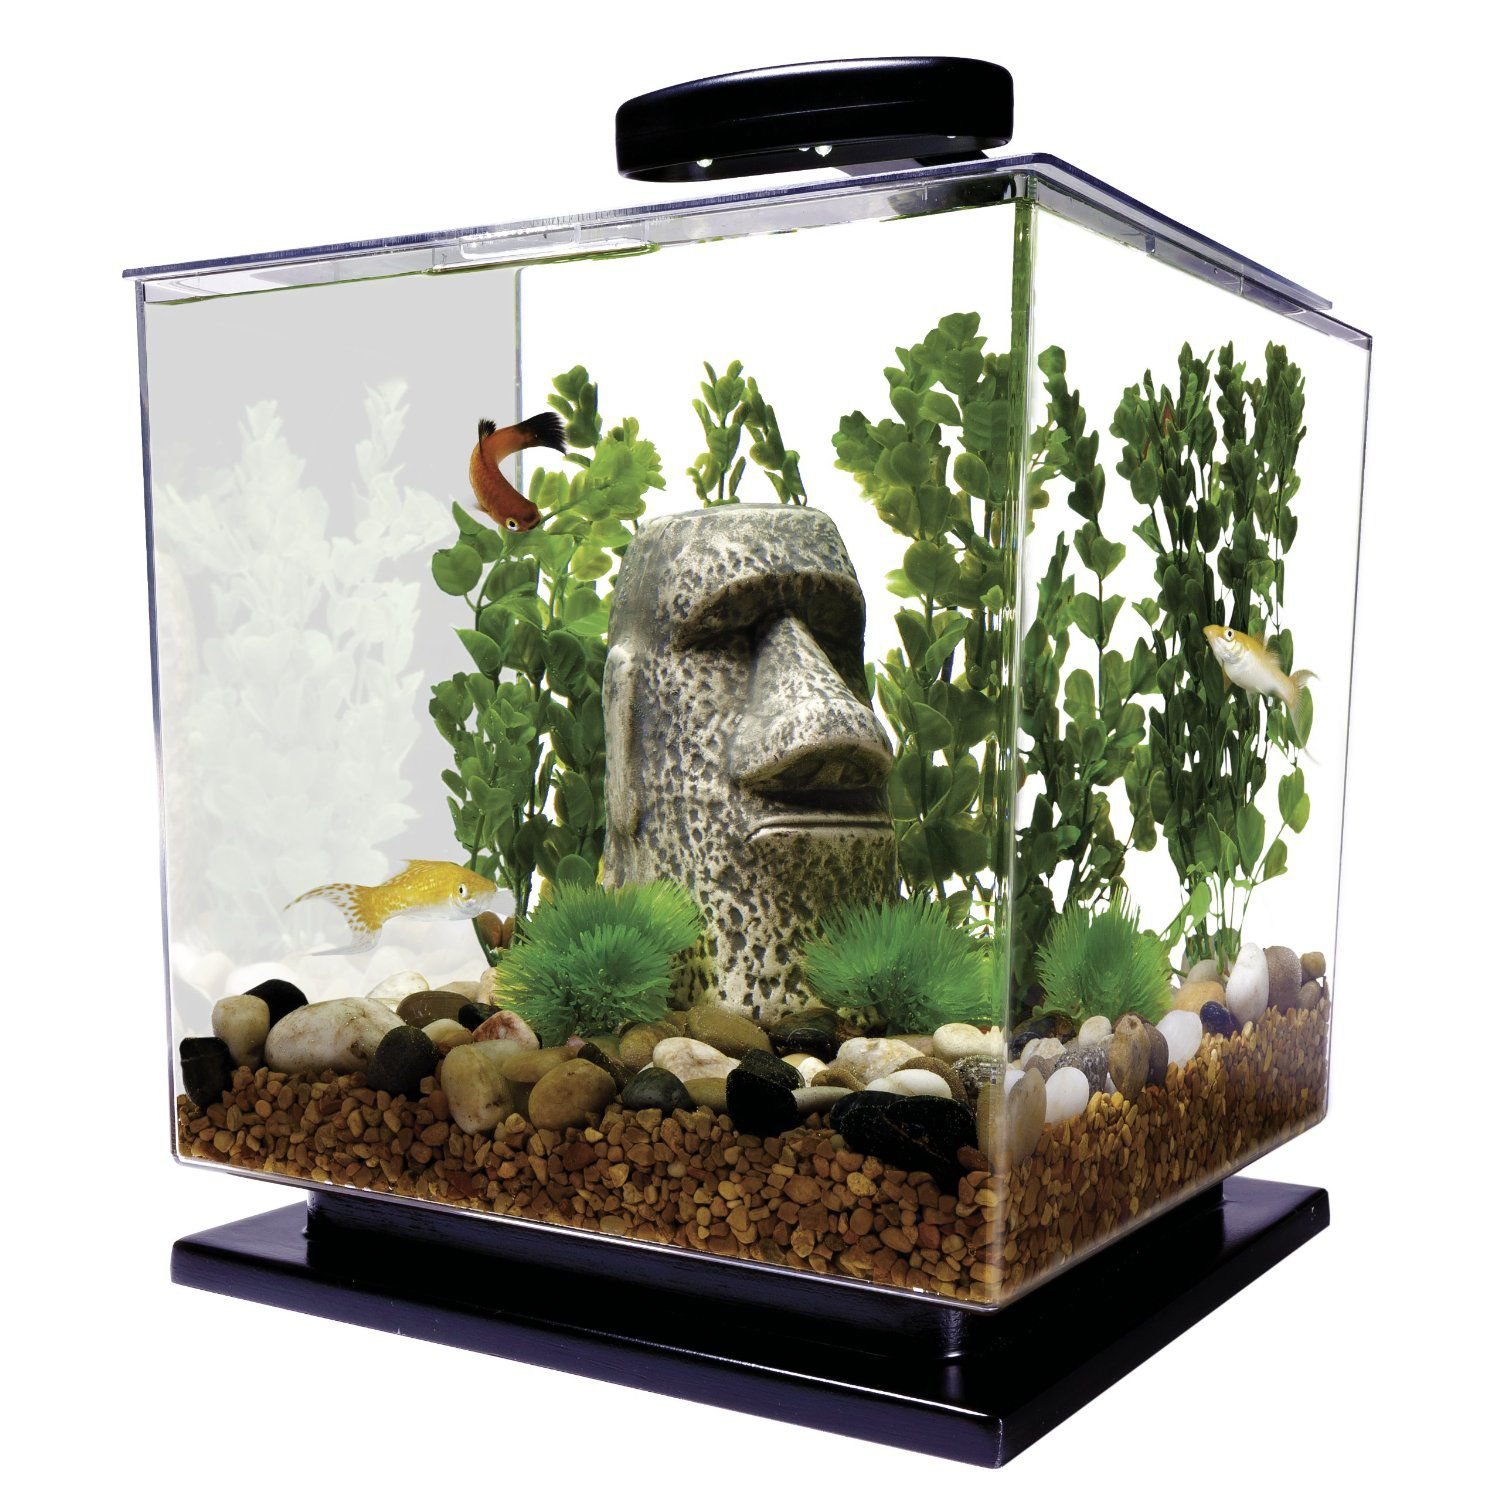 Is it safe to keep a betta in a vase learn more about mini aquariums pros and cons of small fish tanks reviewsmspy